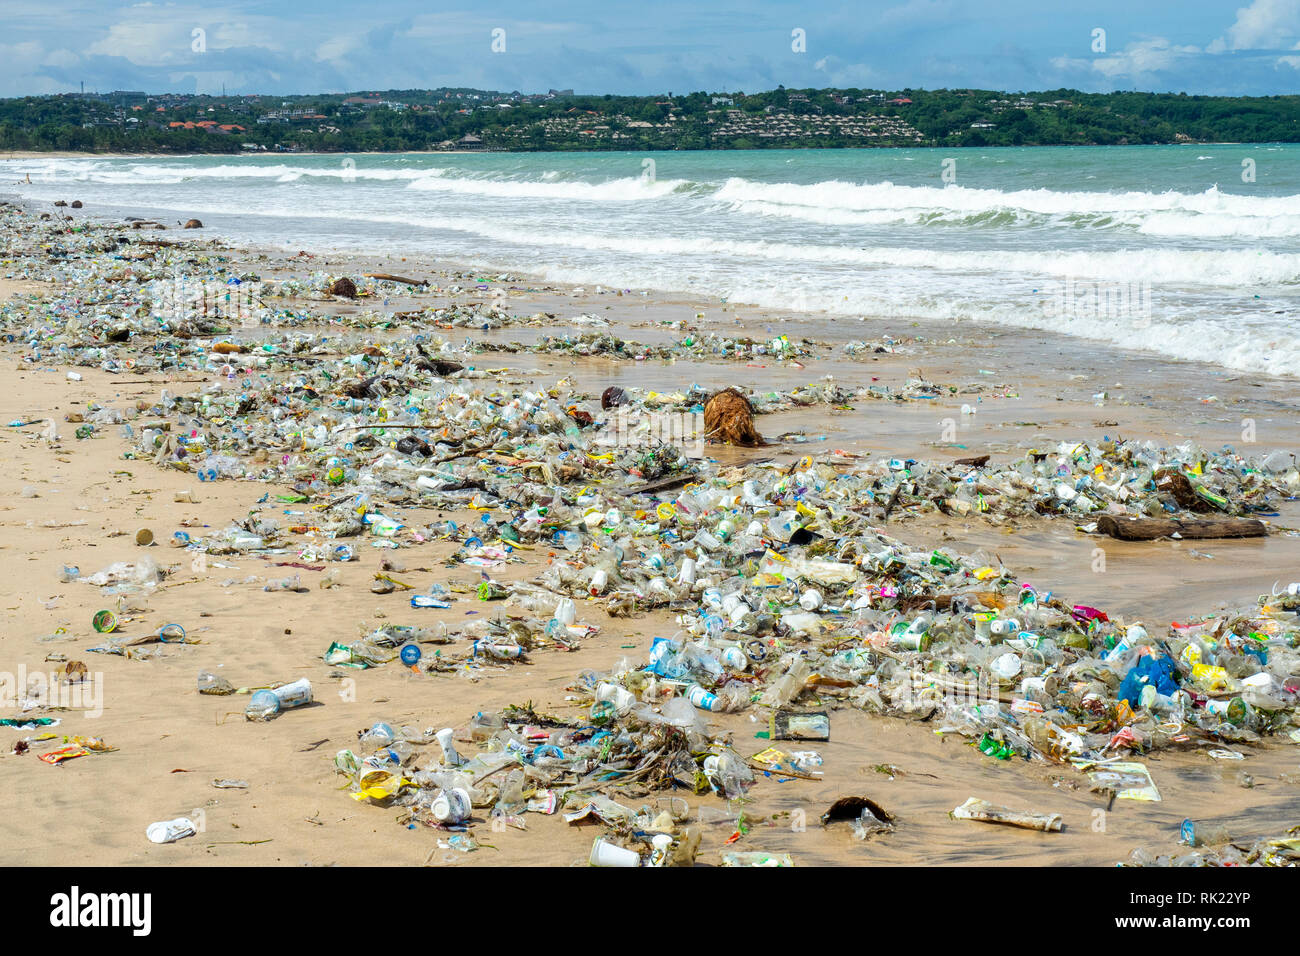 Pollution of plastic bottles, cups, straws and other litter washing up on the beach at Jimbaran Bay, Bali Indonesia. Stock Photo